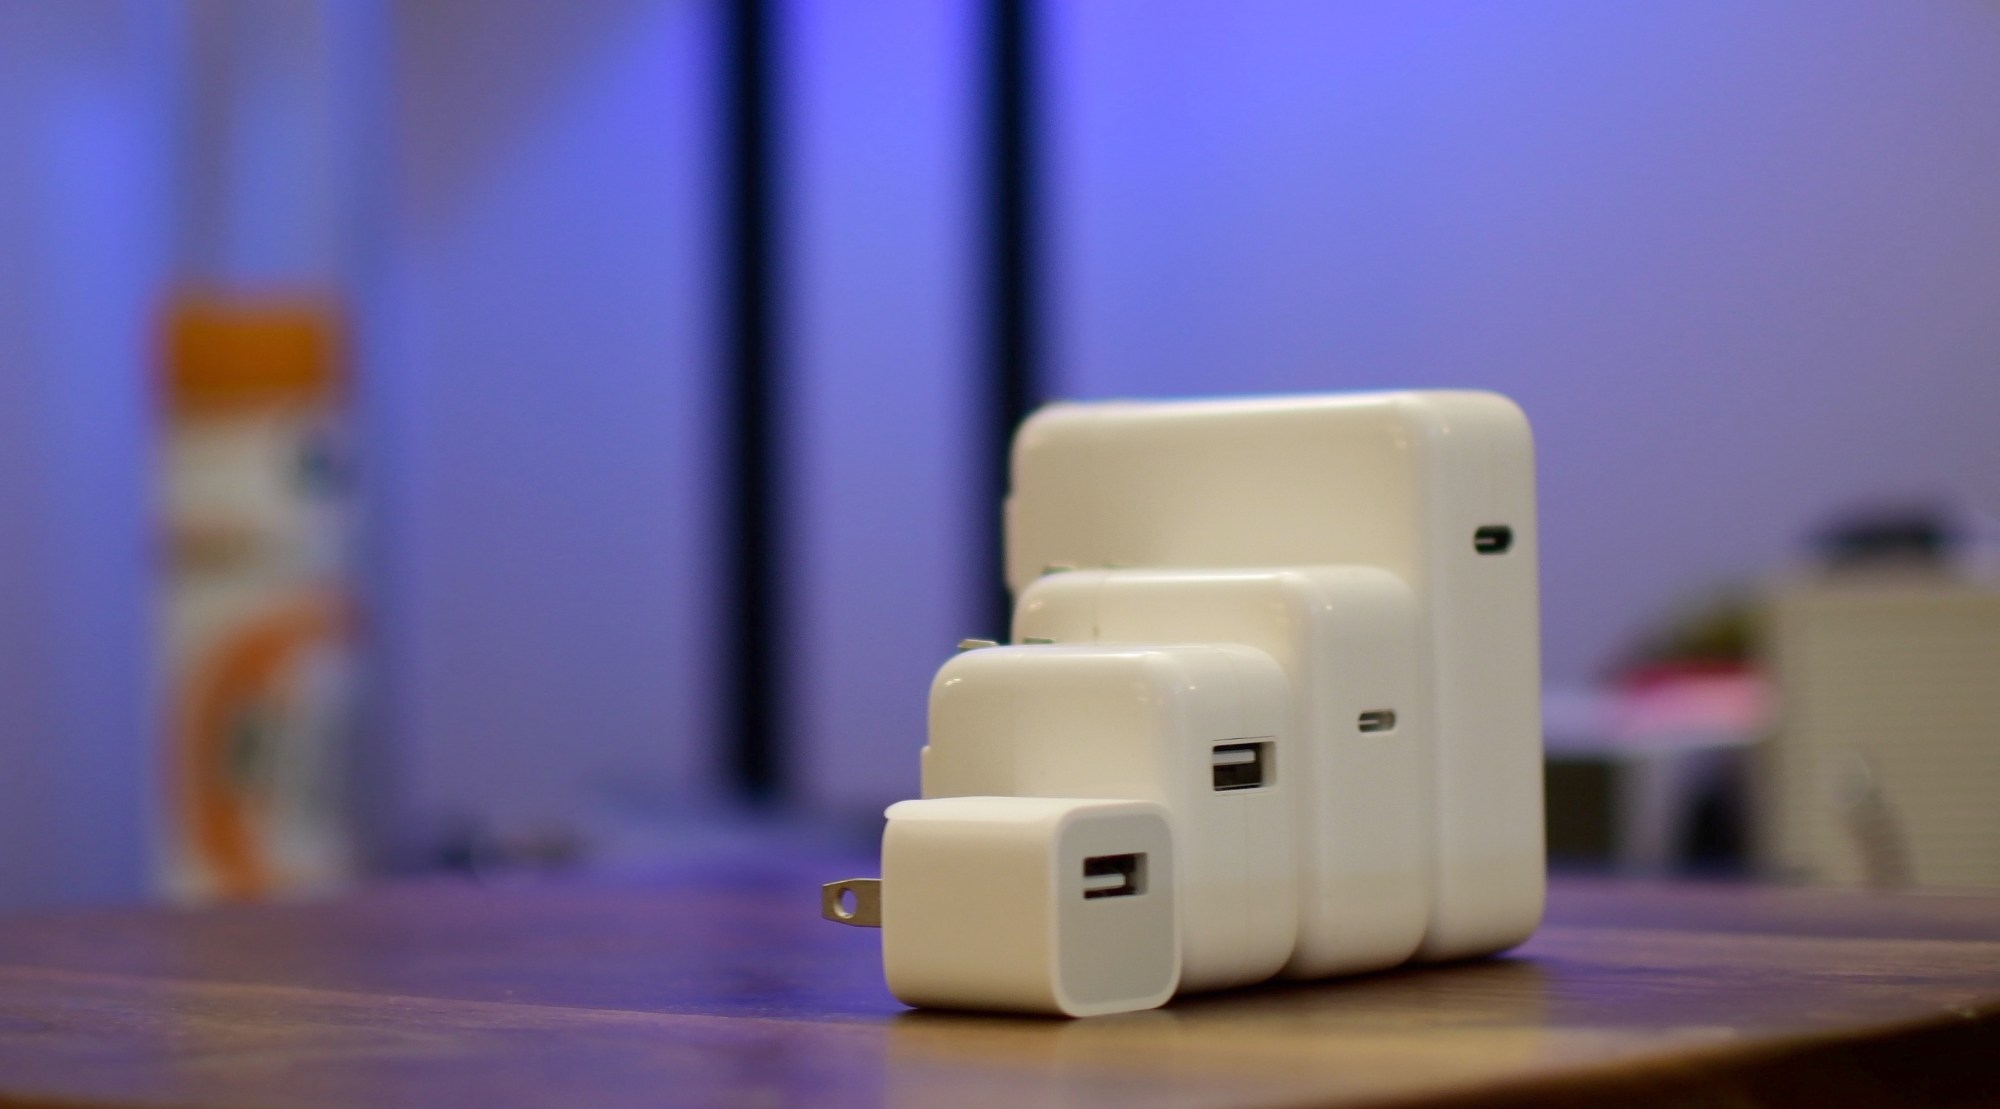 hight resolution of iphone fast charge teaser image showing apple usb power adapters and usb c chargers